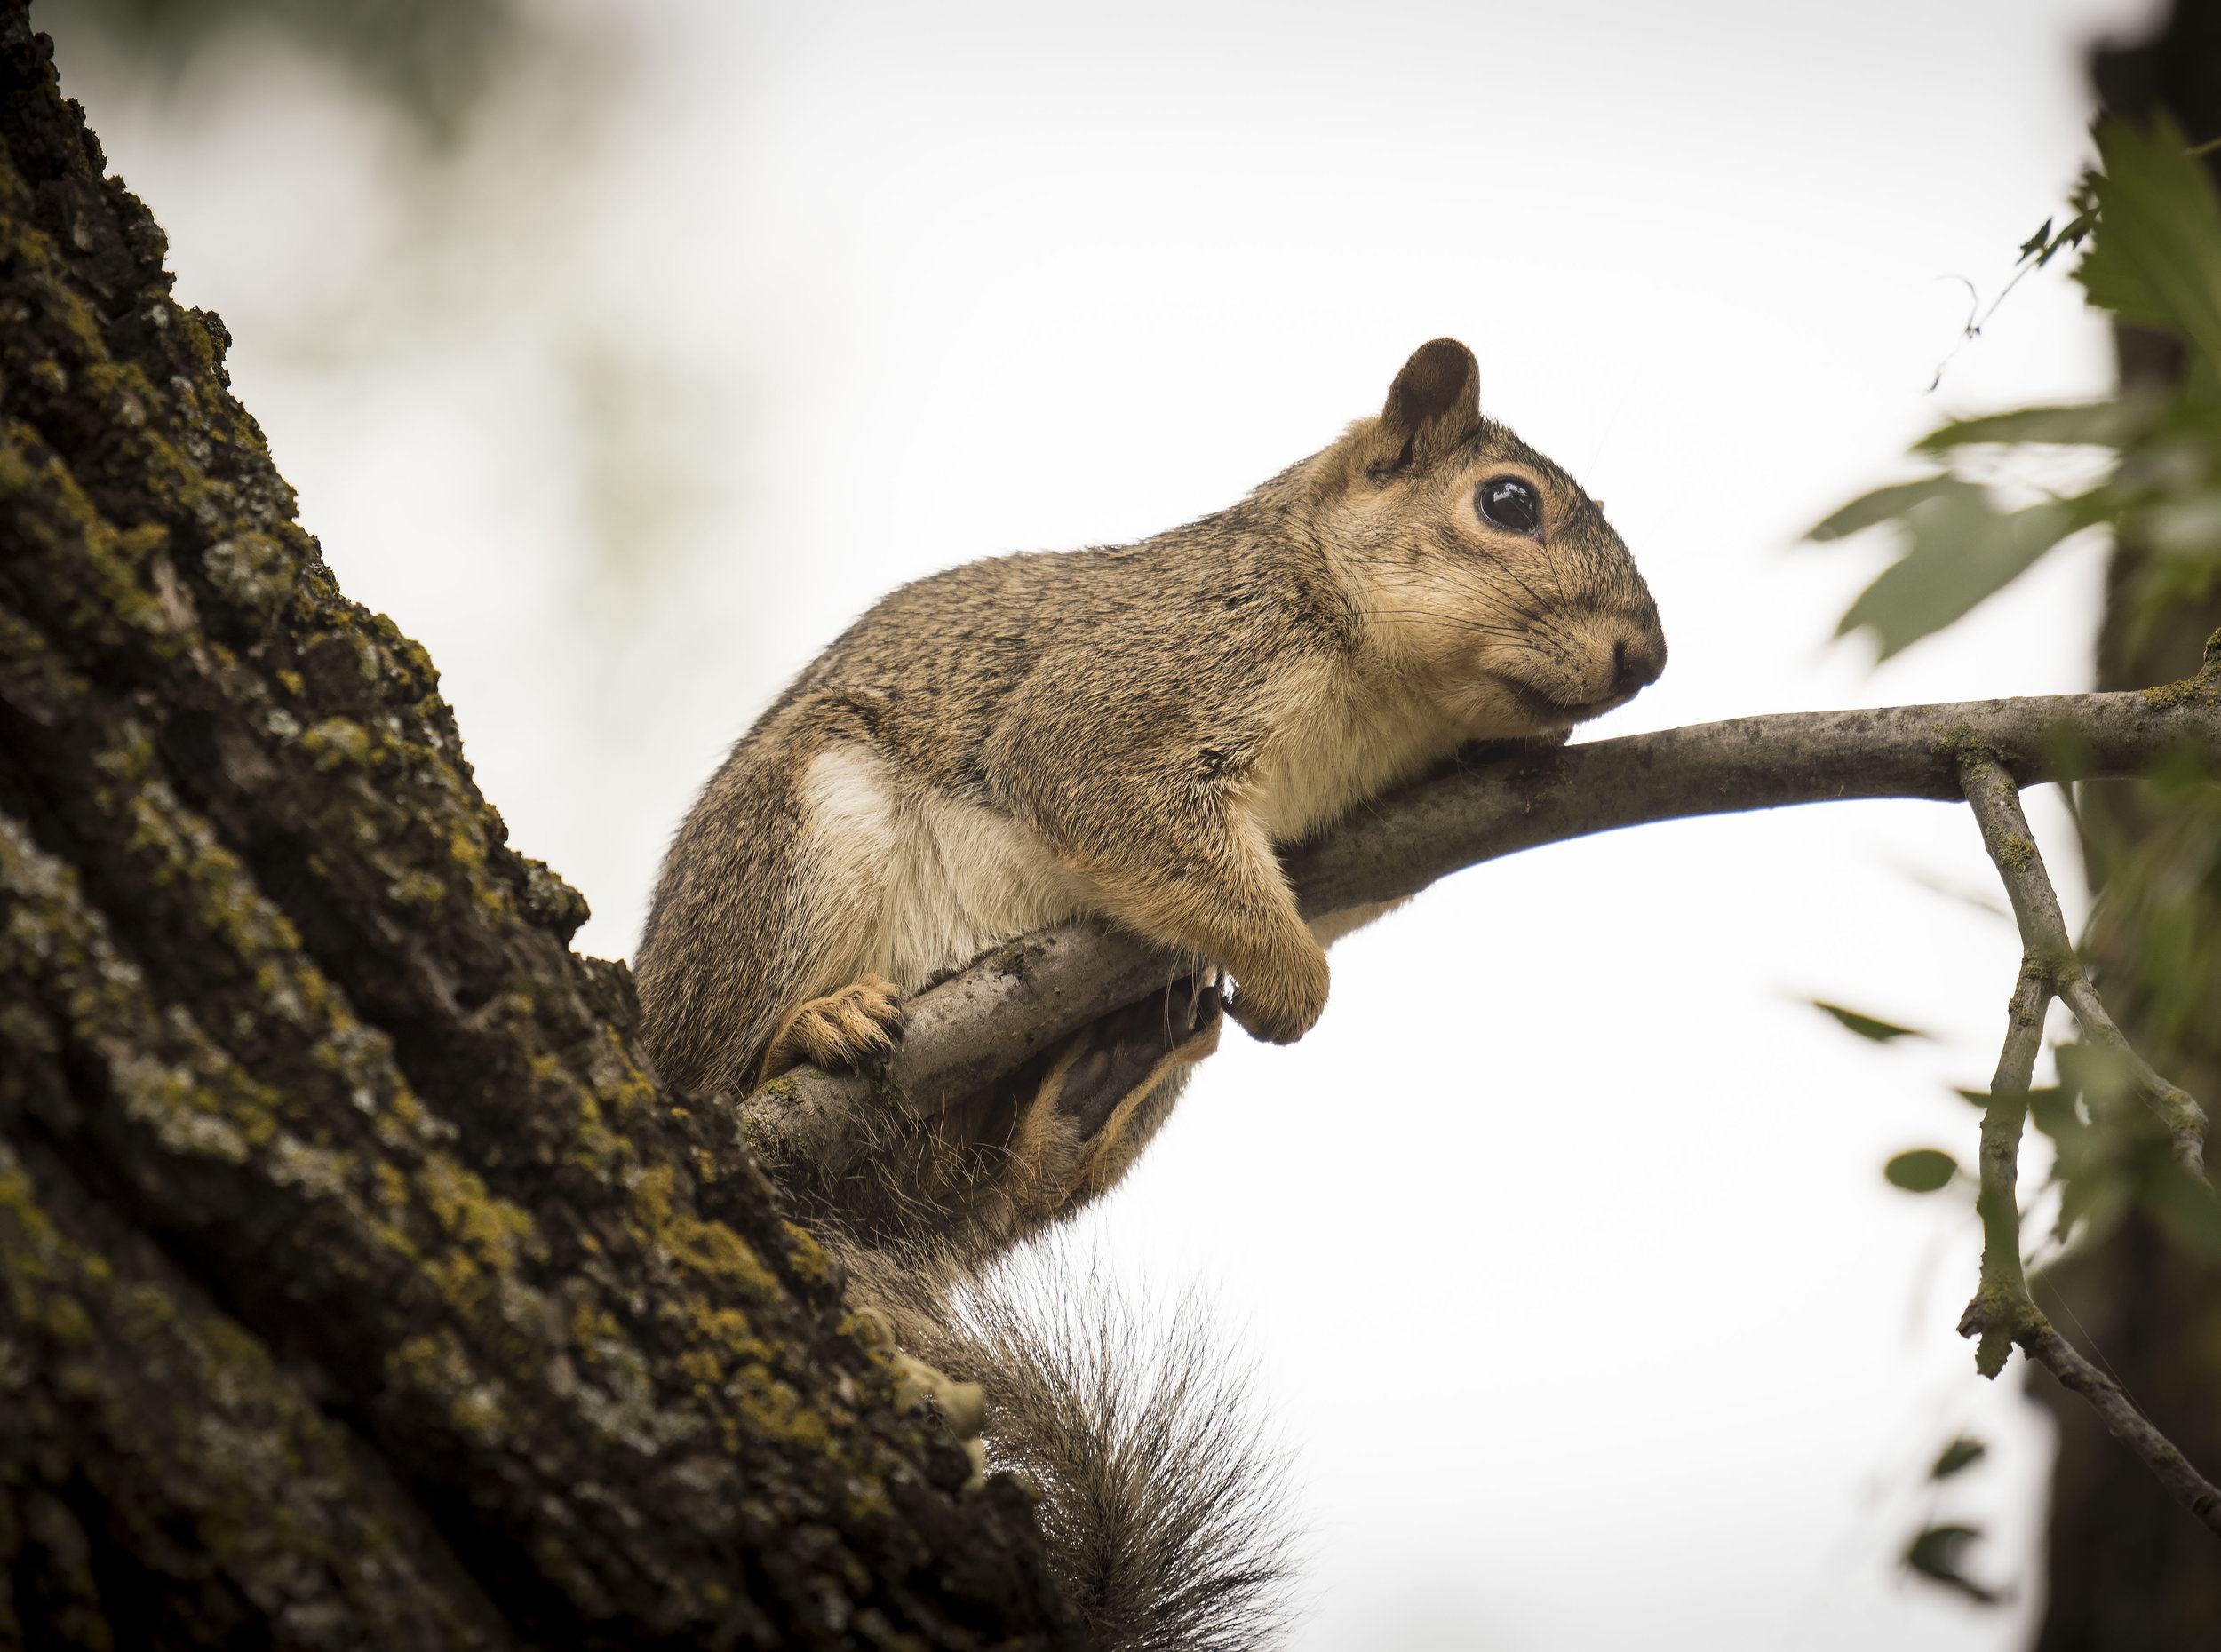 Squirrel clasping a tree branch